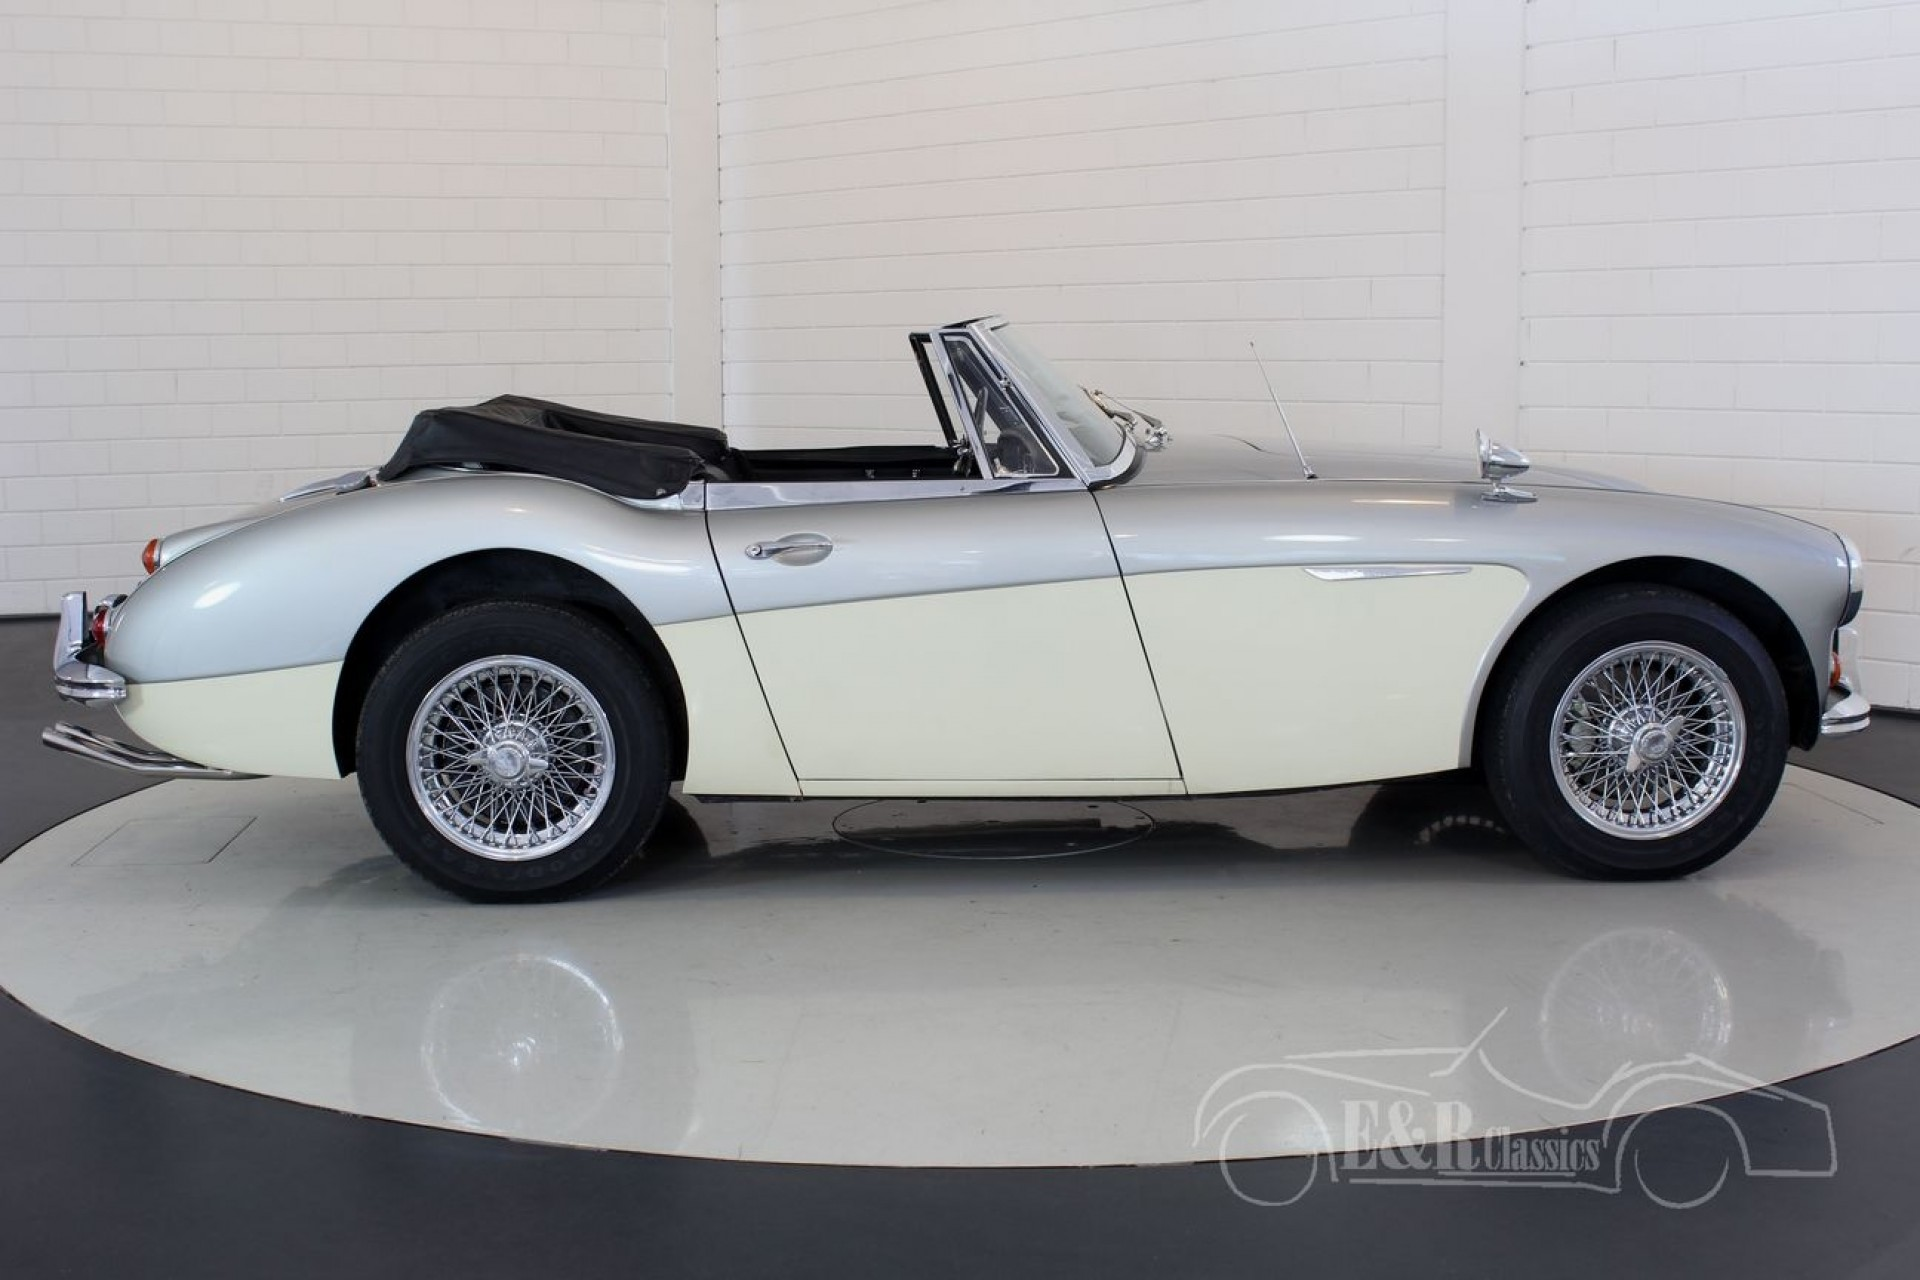 Honda Union City >> Austin-Healey 3000 MK3 BJ8 1966 for sale at ERclassics